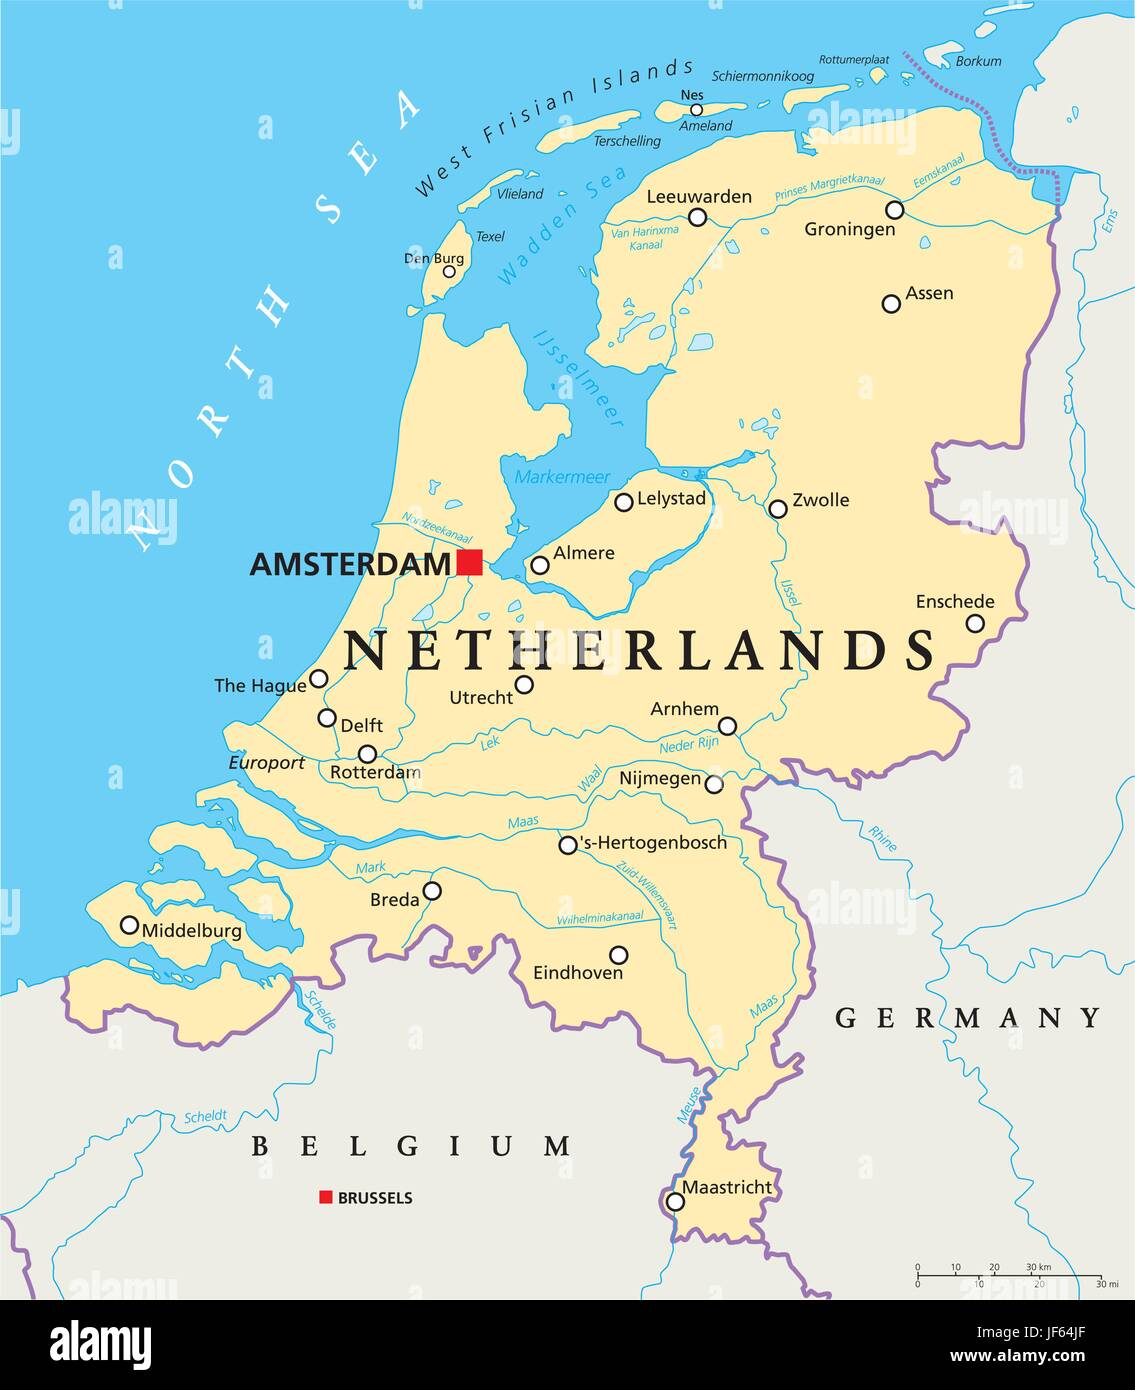 holland, netherlands, amsterdam, rotterdam, map, atlas, map ...